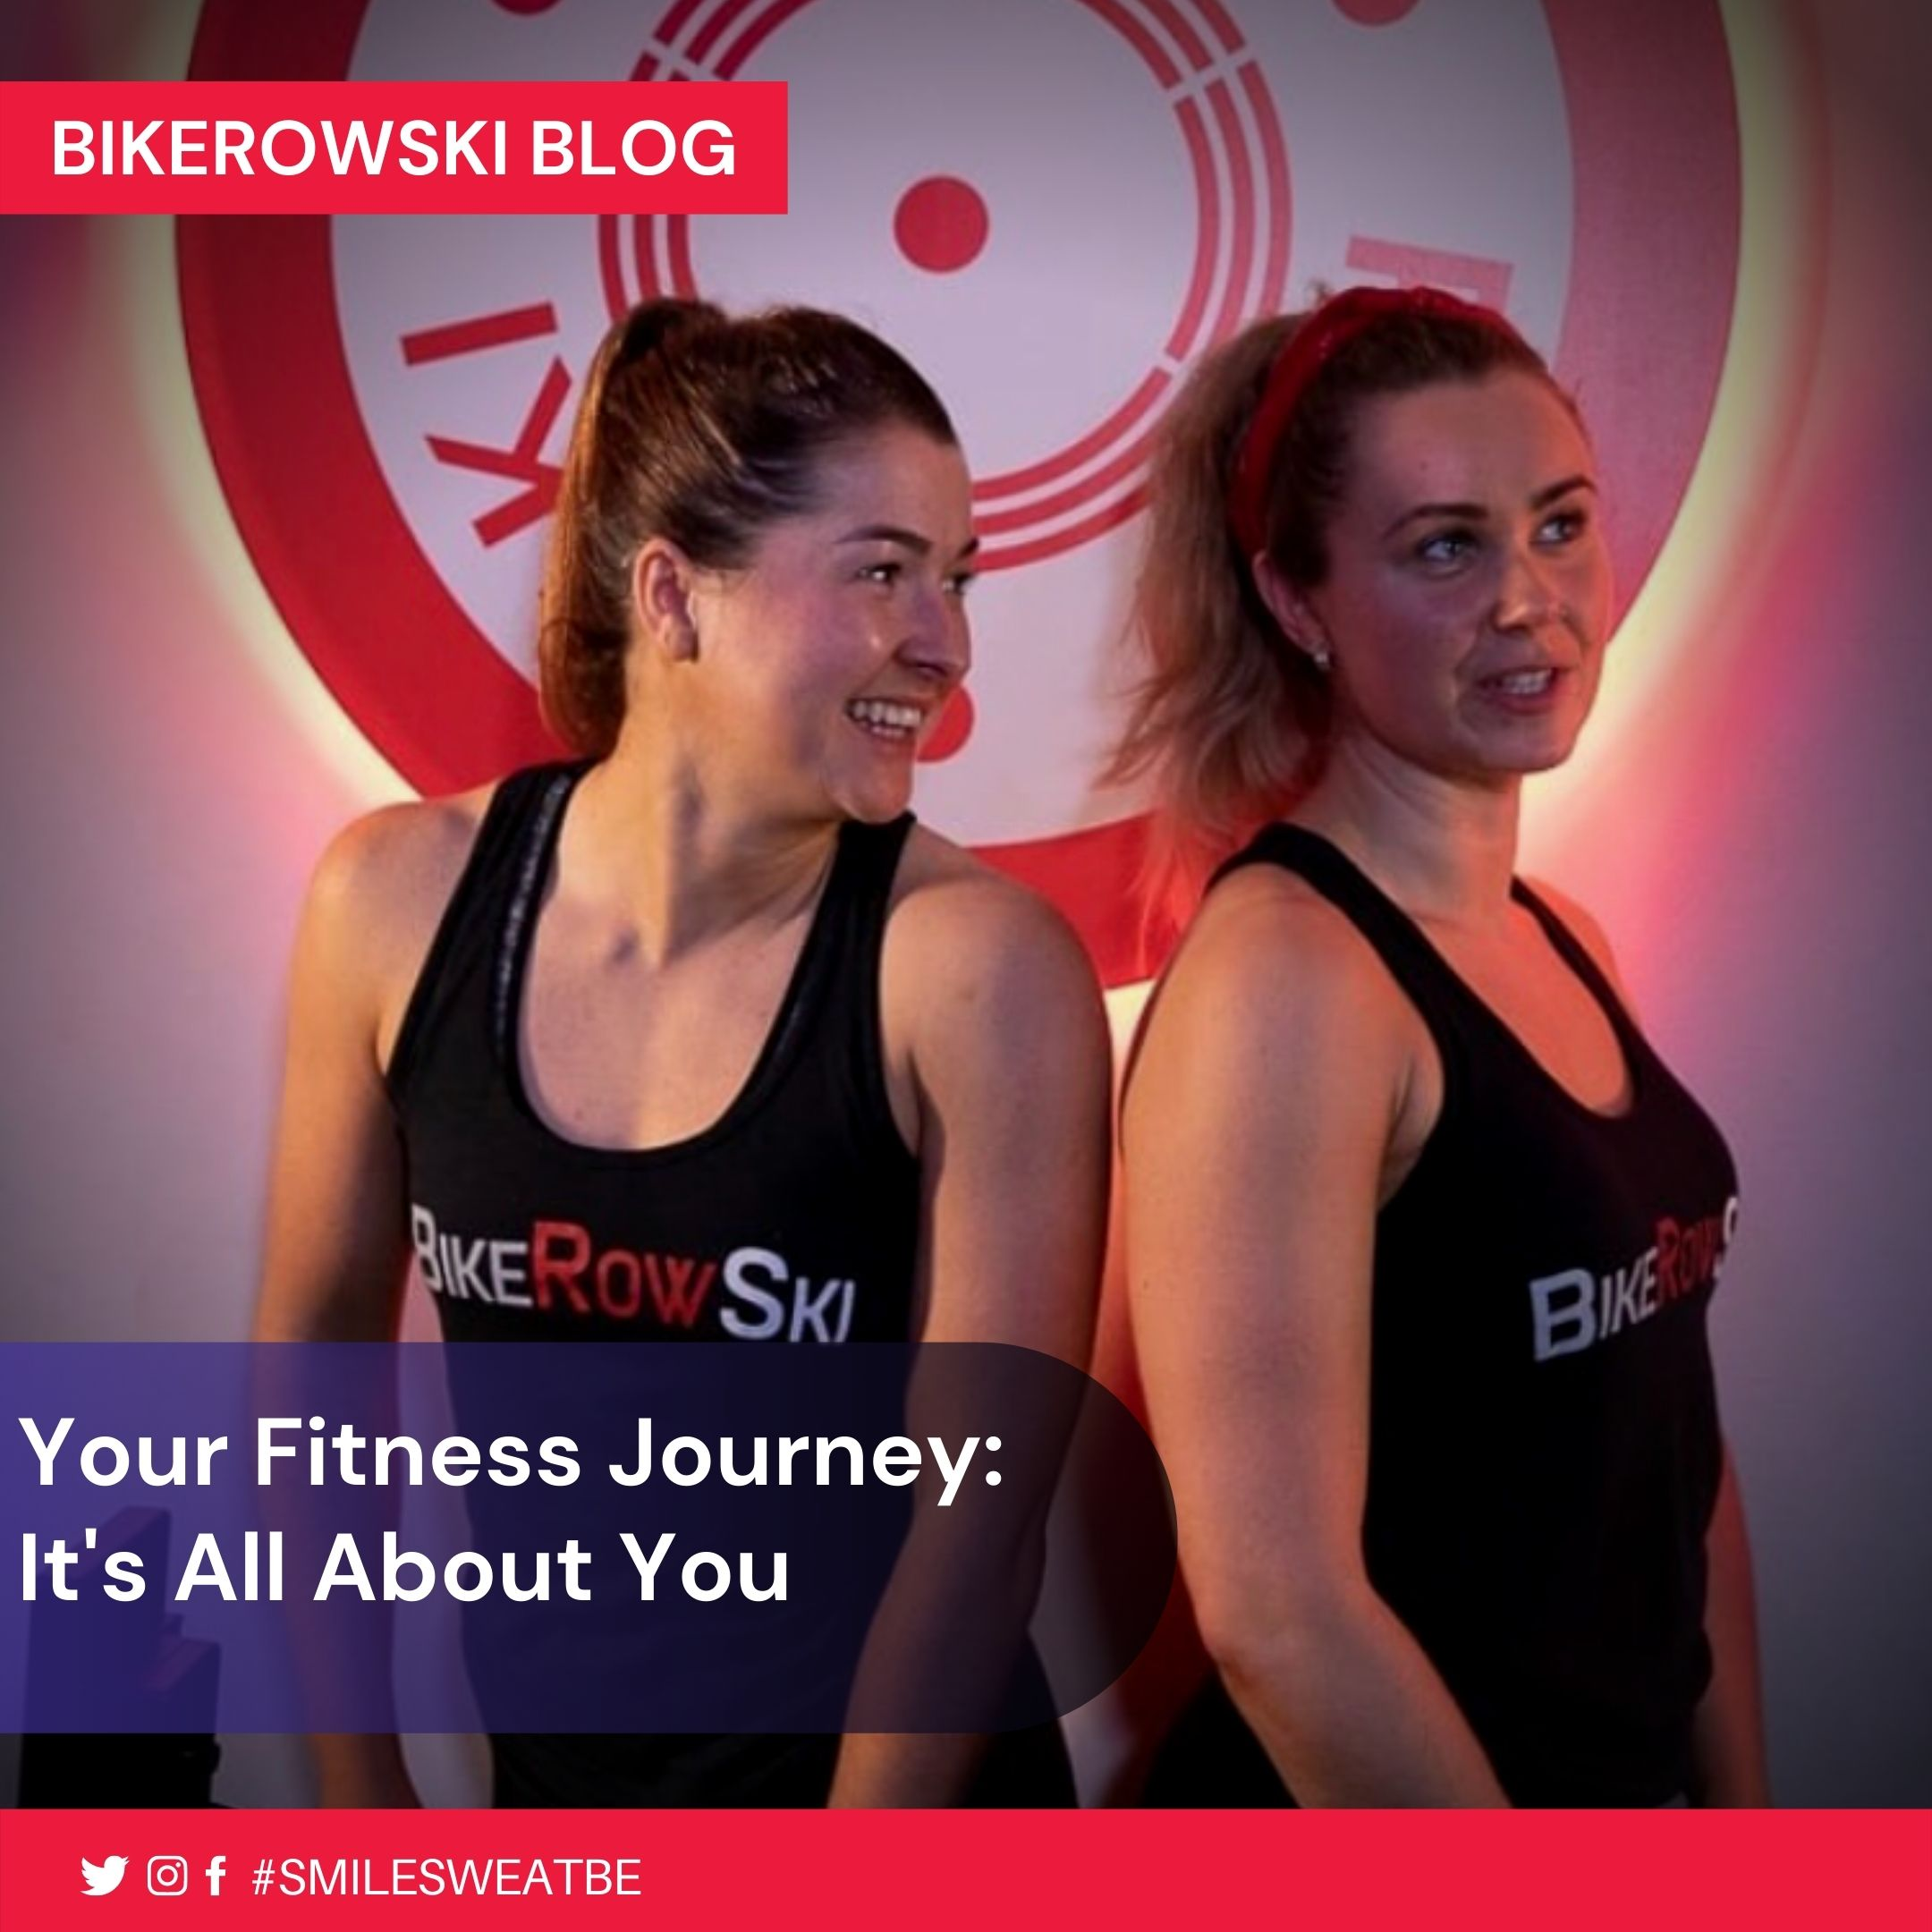 Your Fitness Journey: It's All About You